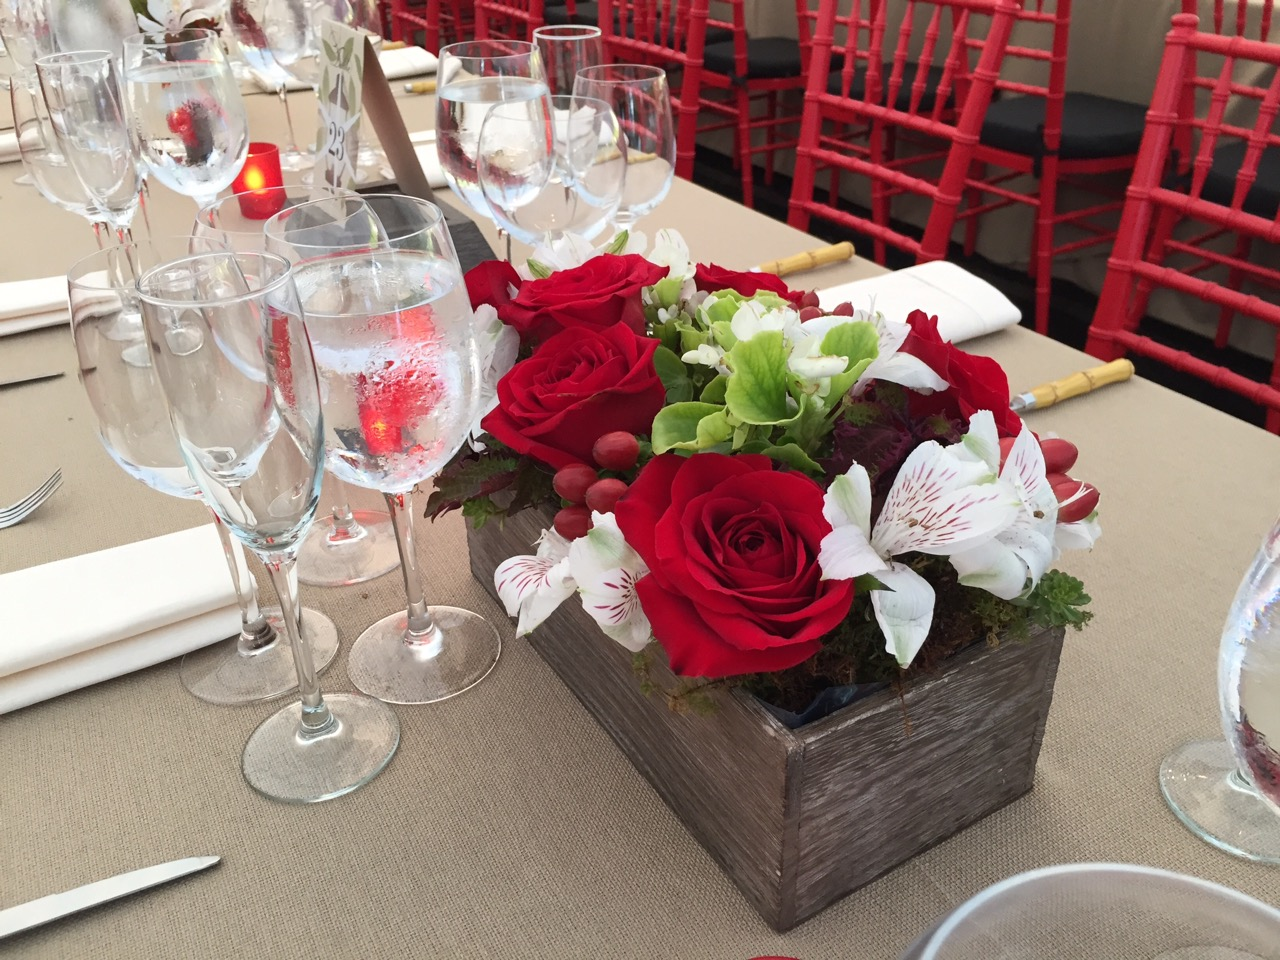 Rustic, garden box-inspired centerpieces with red roses, hypericum and live rooted floral accents